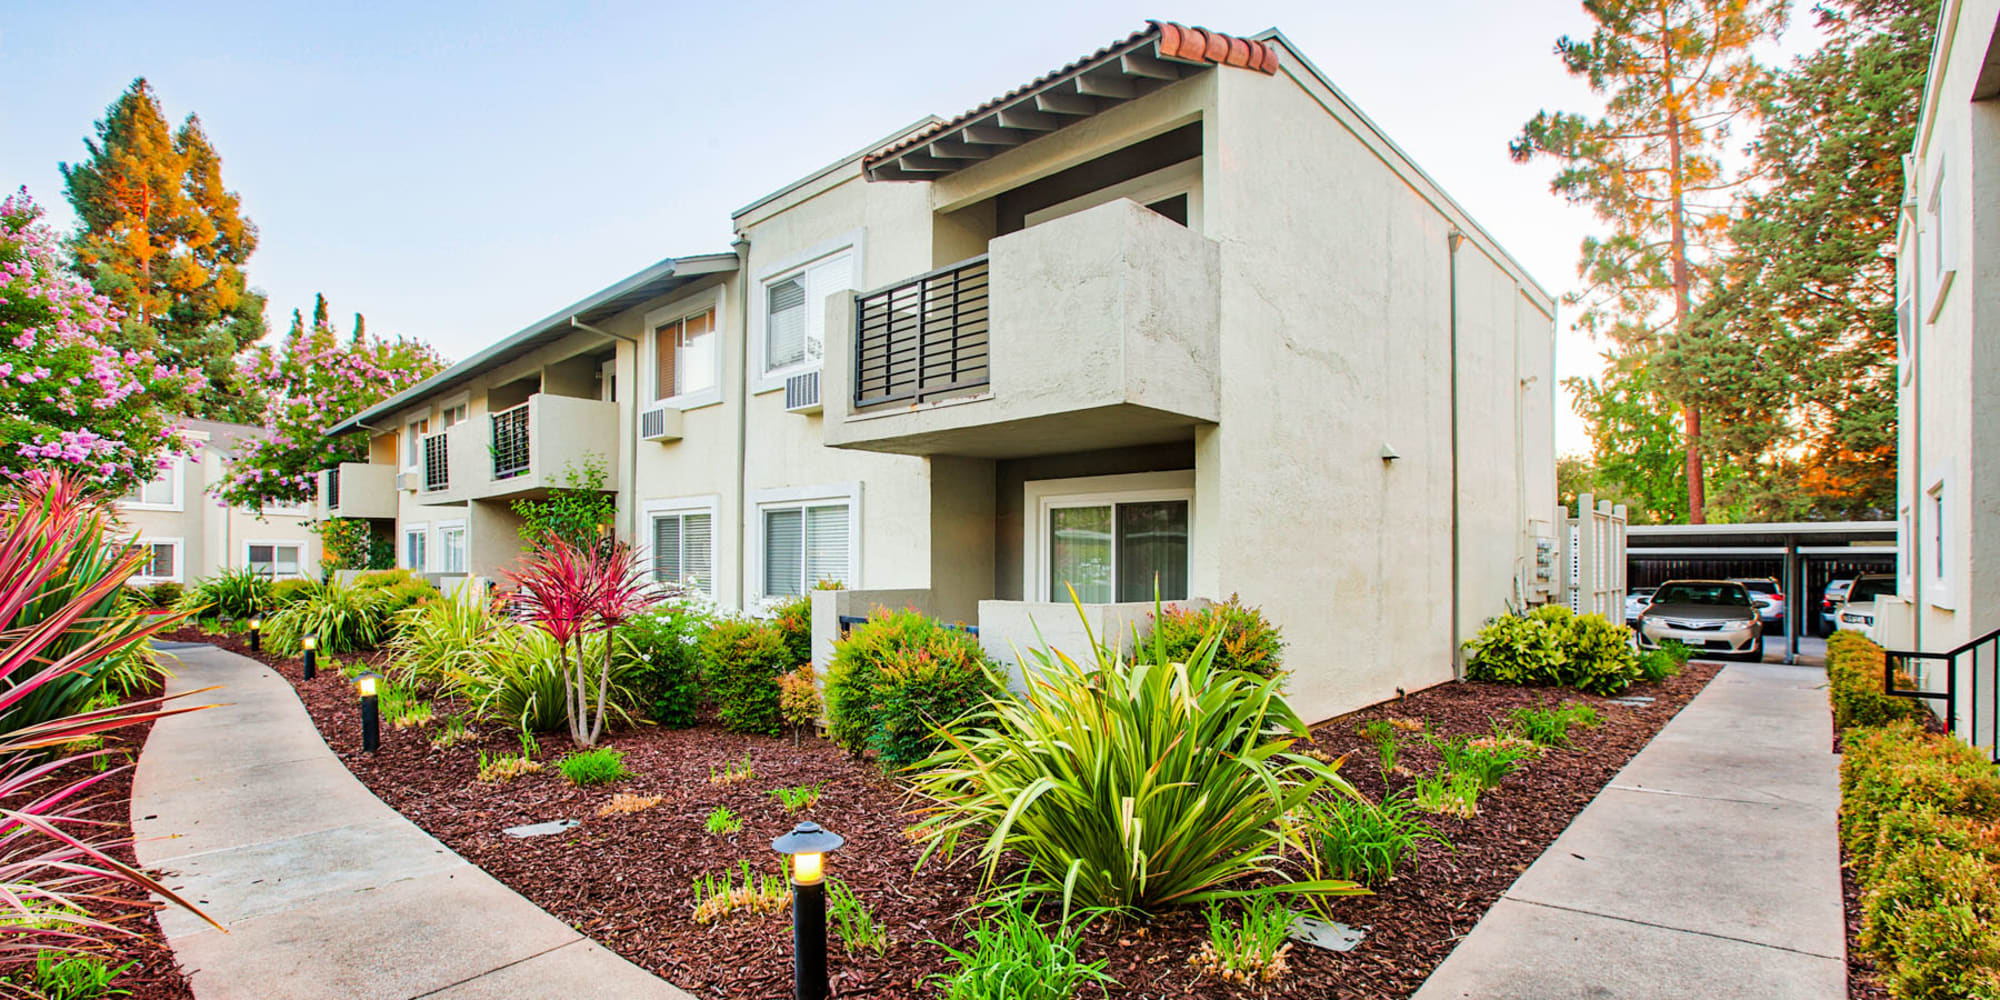 Professionally managed landscaping and pathways between resident buildings at Pleasanton Place Apartment Homes in Pleasanton, California